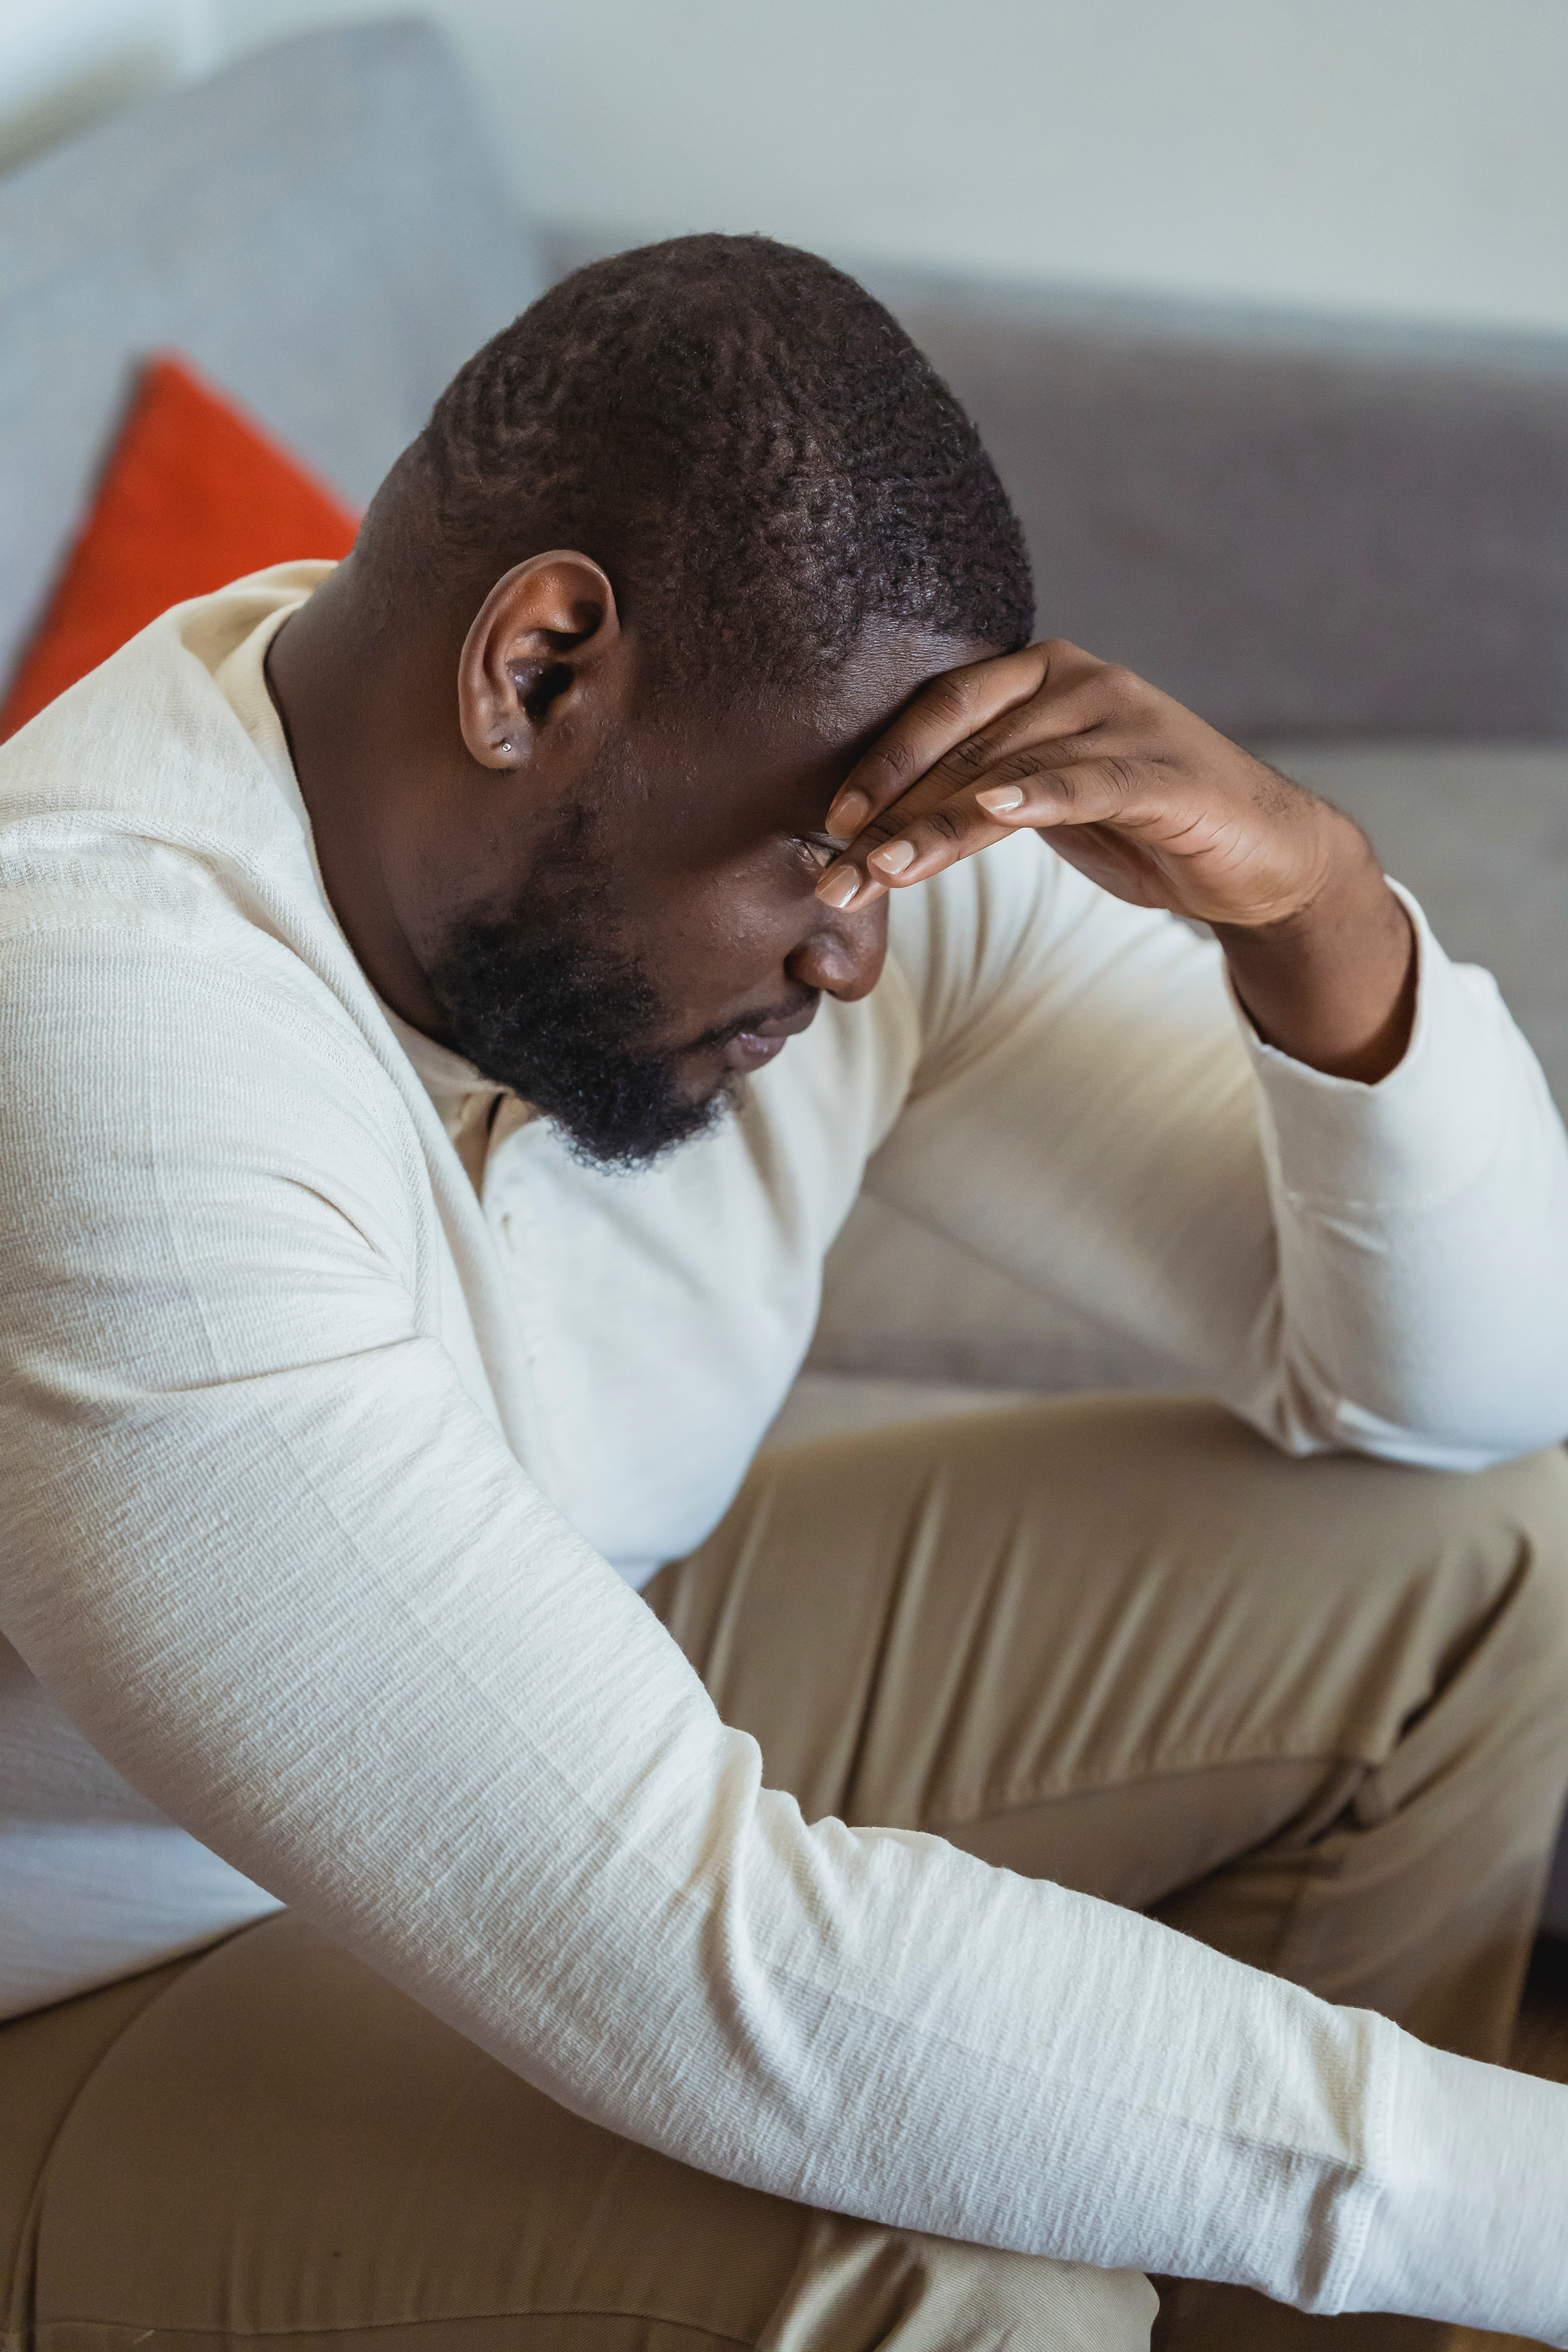 Pensive man sitting on a sofa with his head bowed down and his hand on his forehead   Photo: Pexels